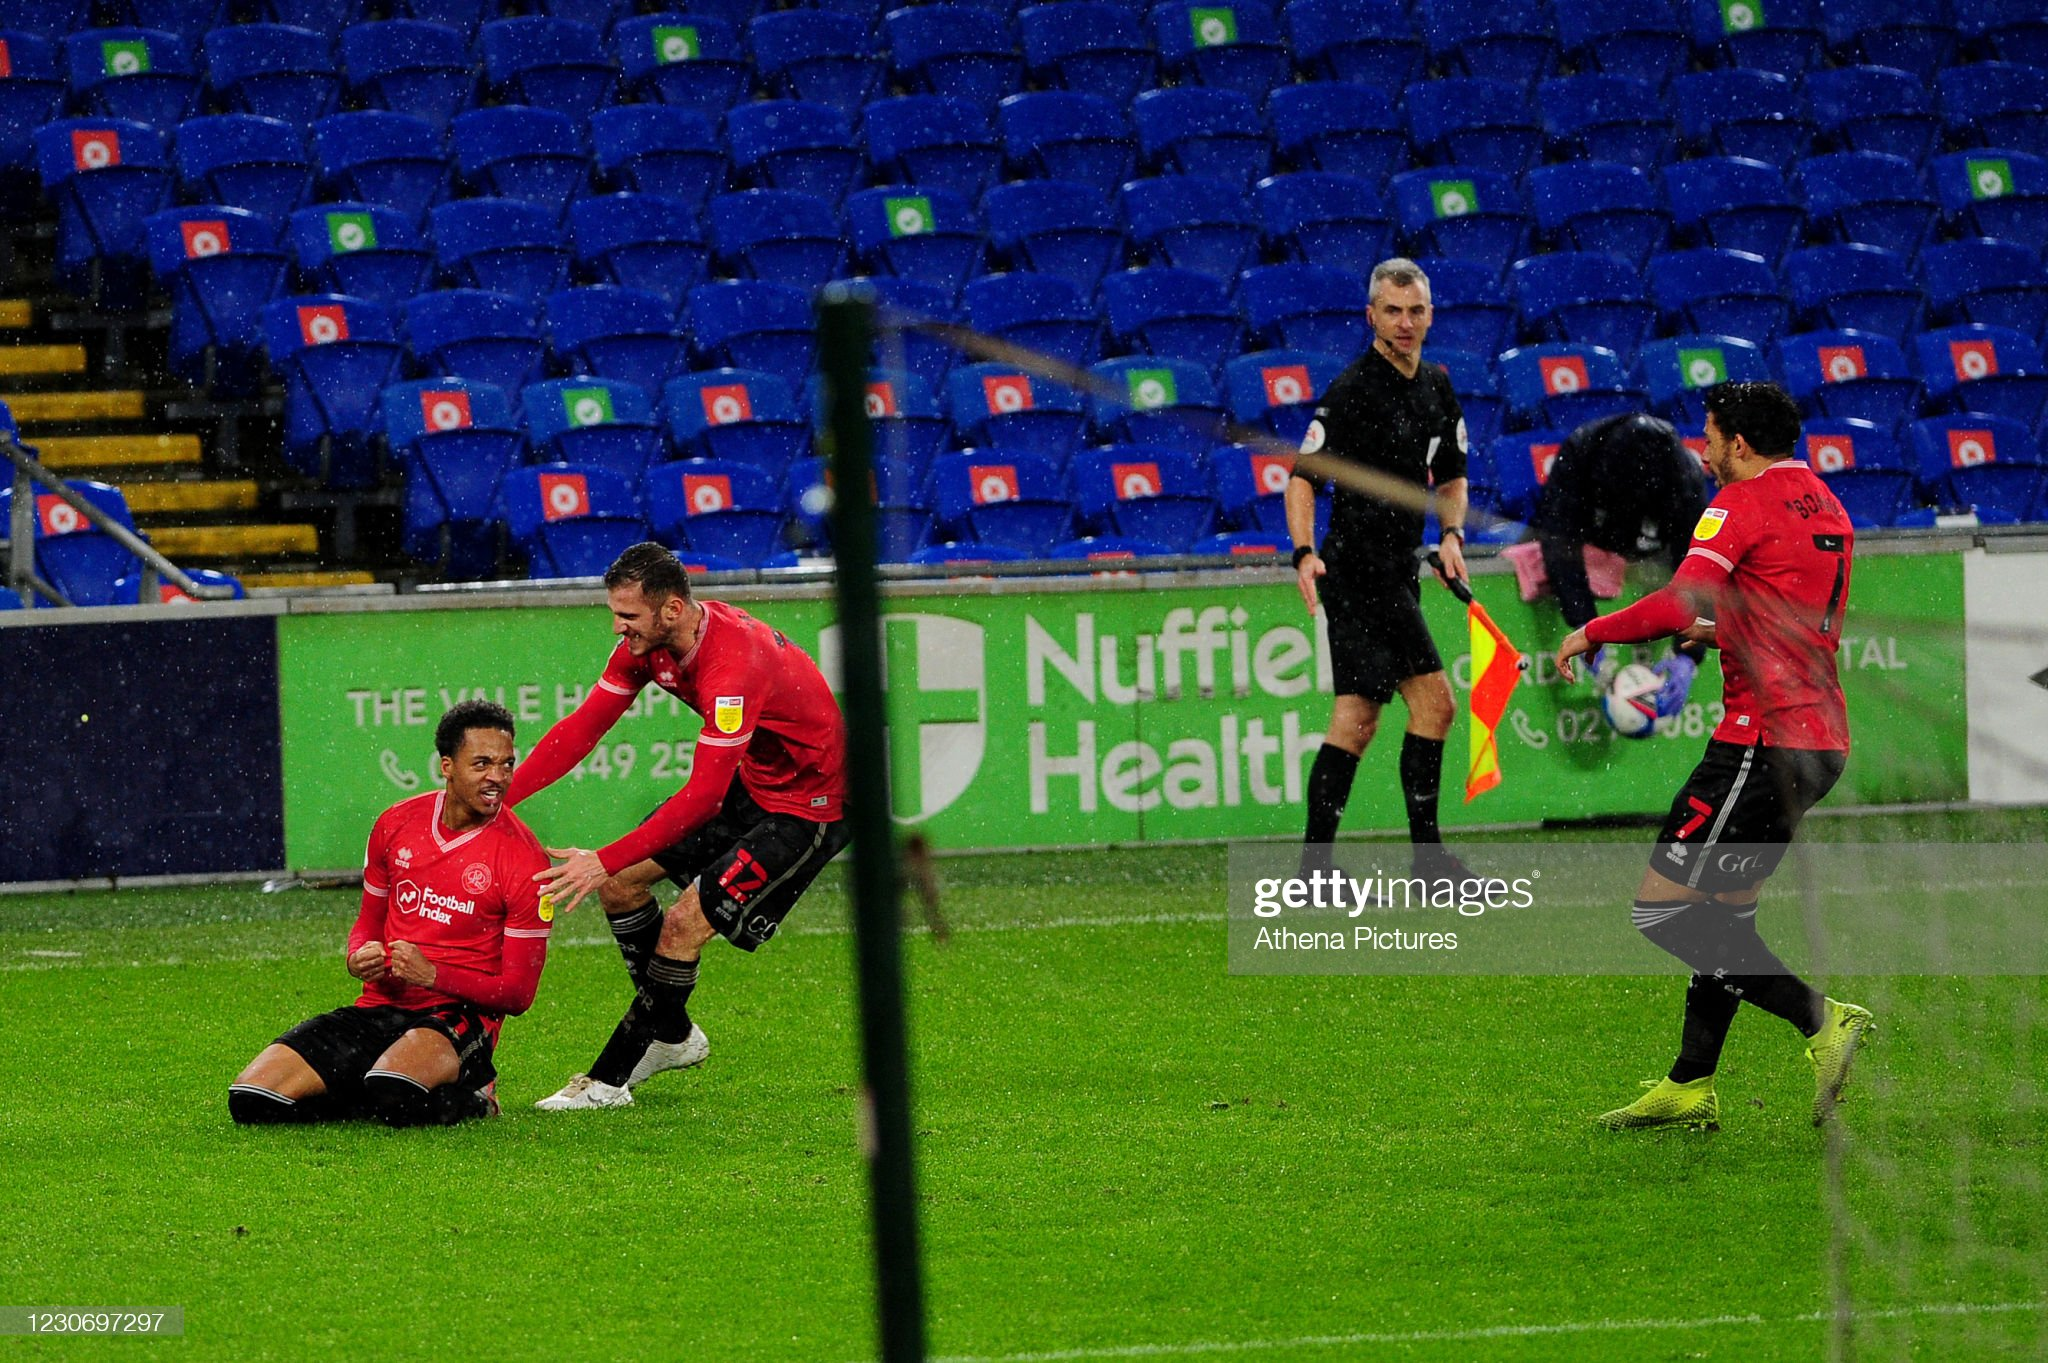 Willock's goal gives QPR victory at Cardiff